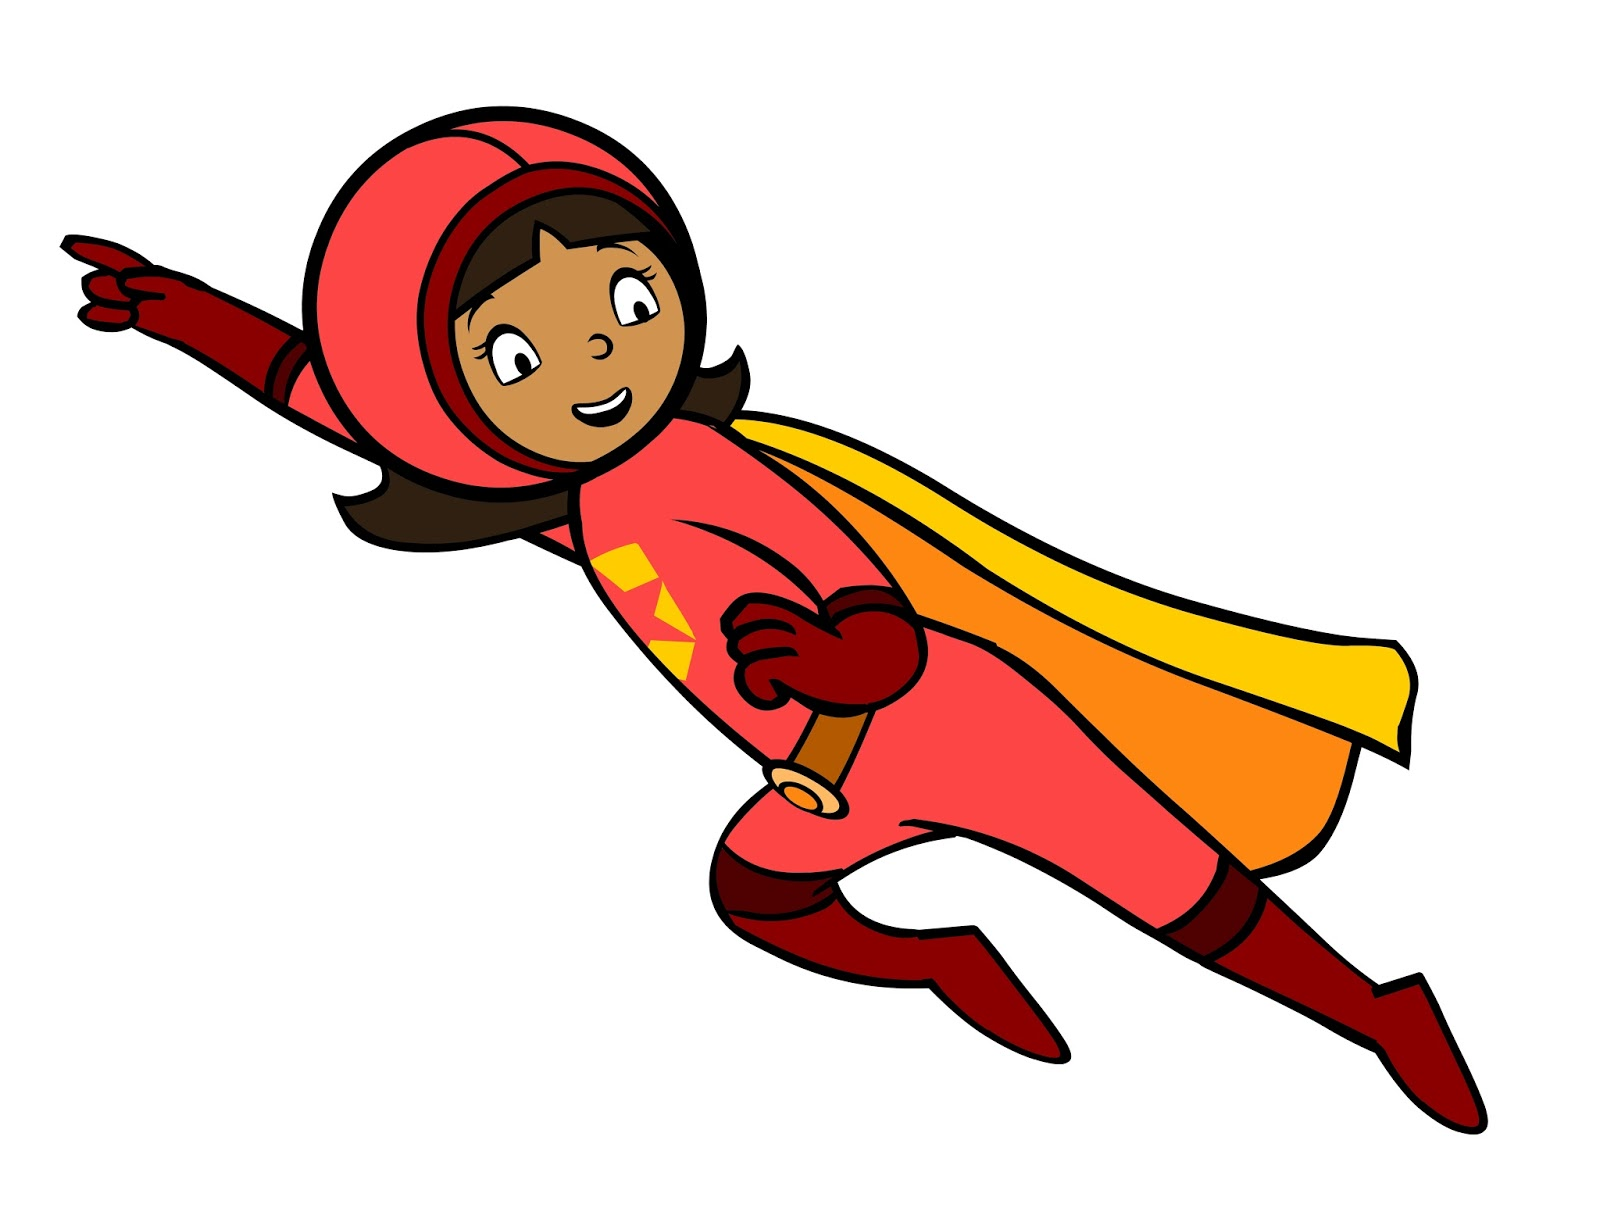 Her Name Is Becky Botsford But When She Goes Undercover She Dons Her Salmon Suit And Yellow Cape To Become Wordgirl